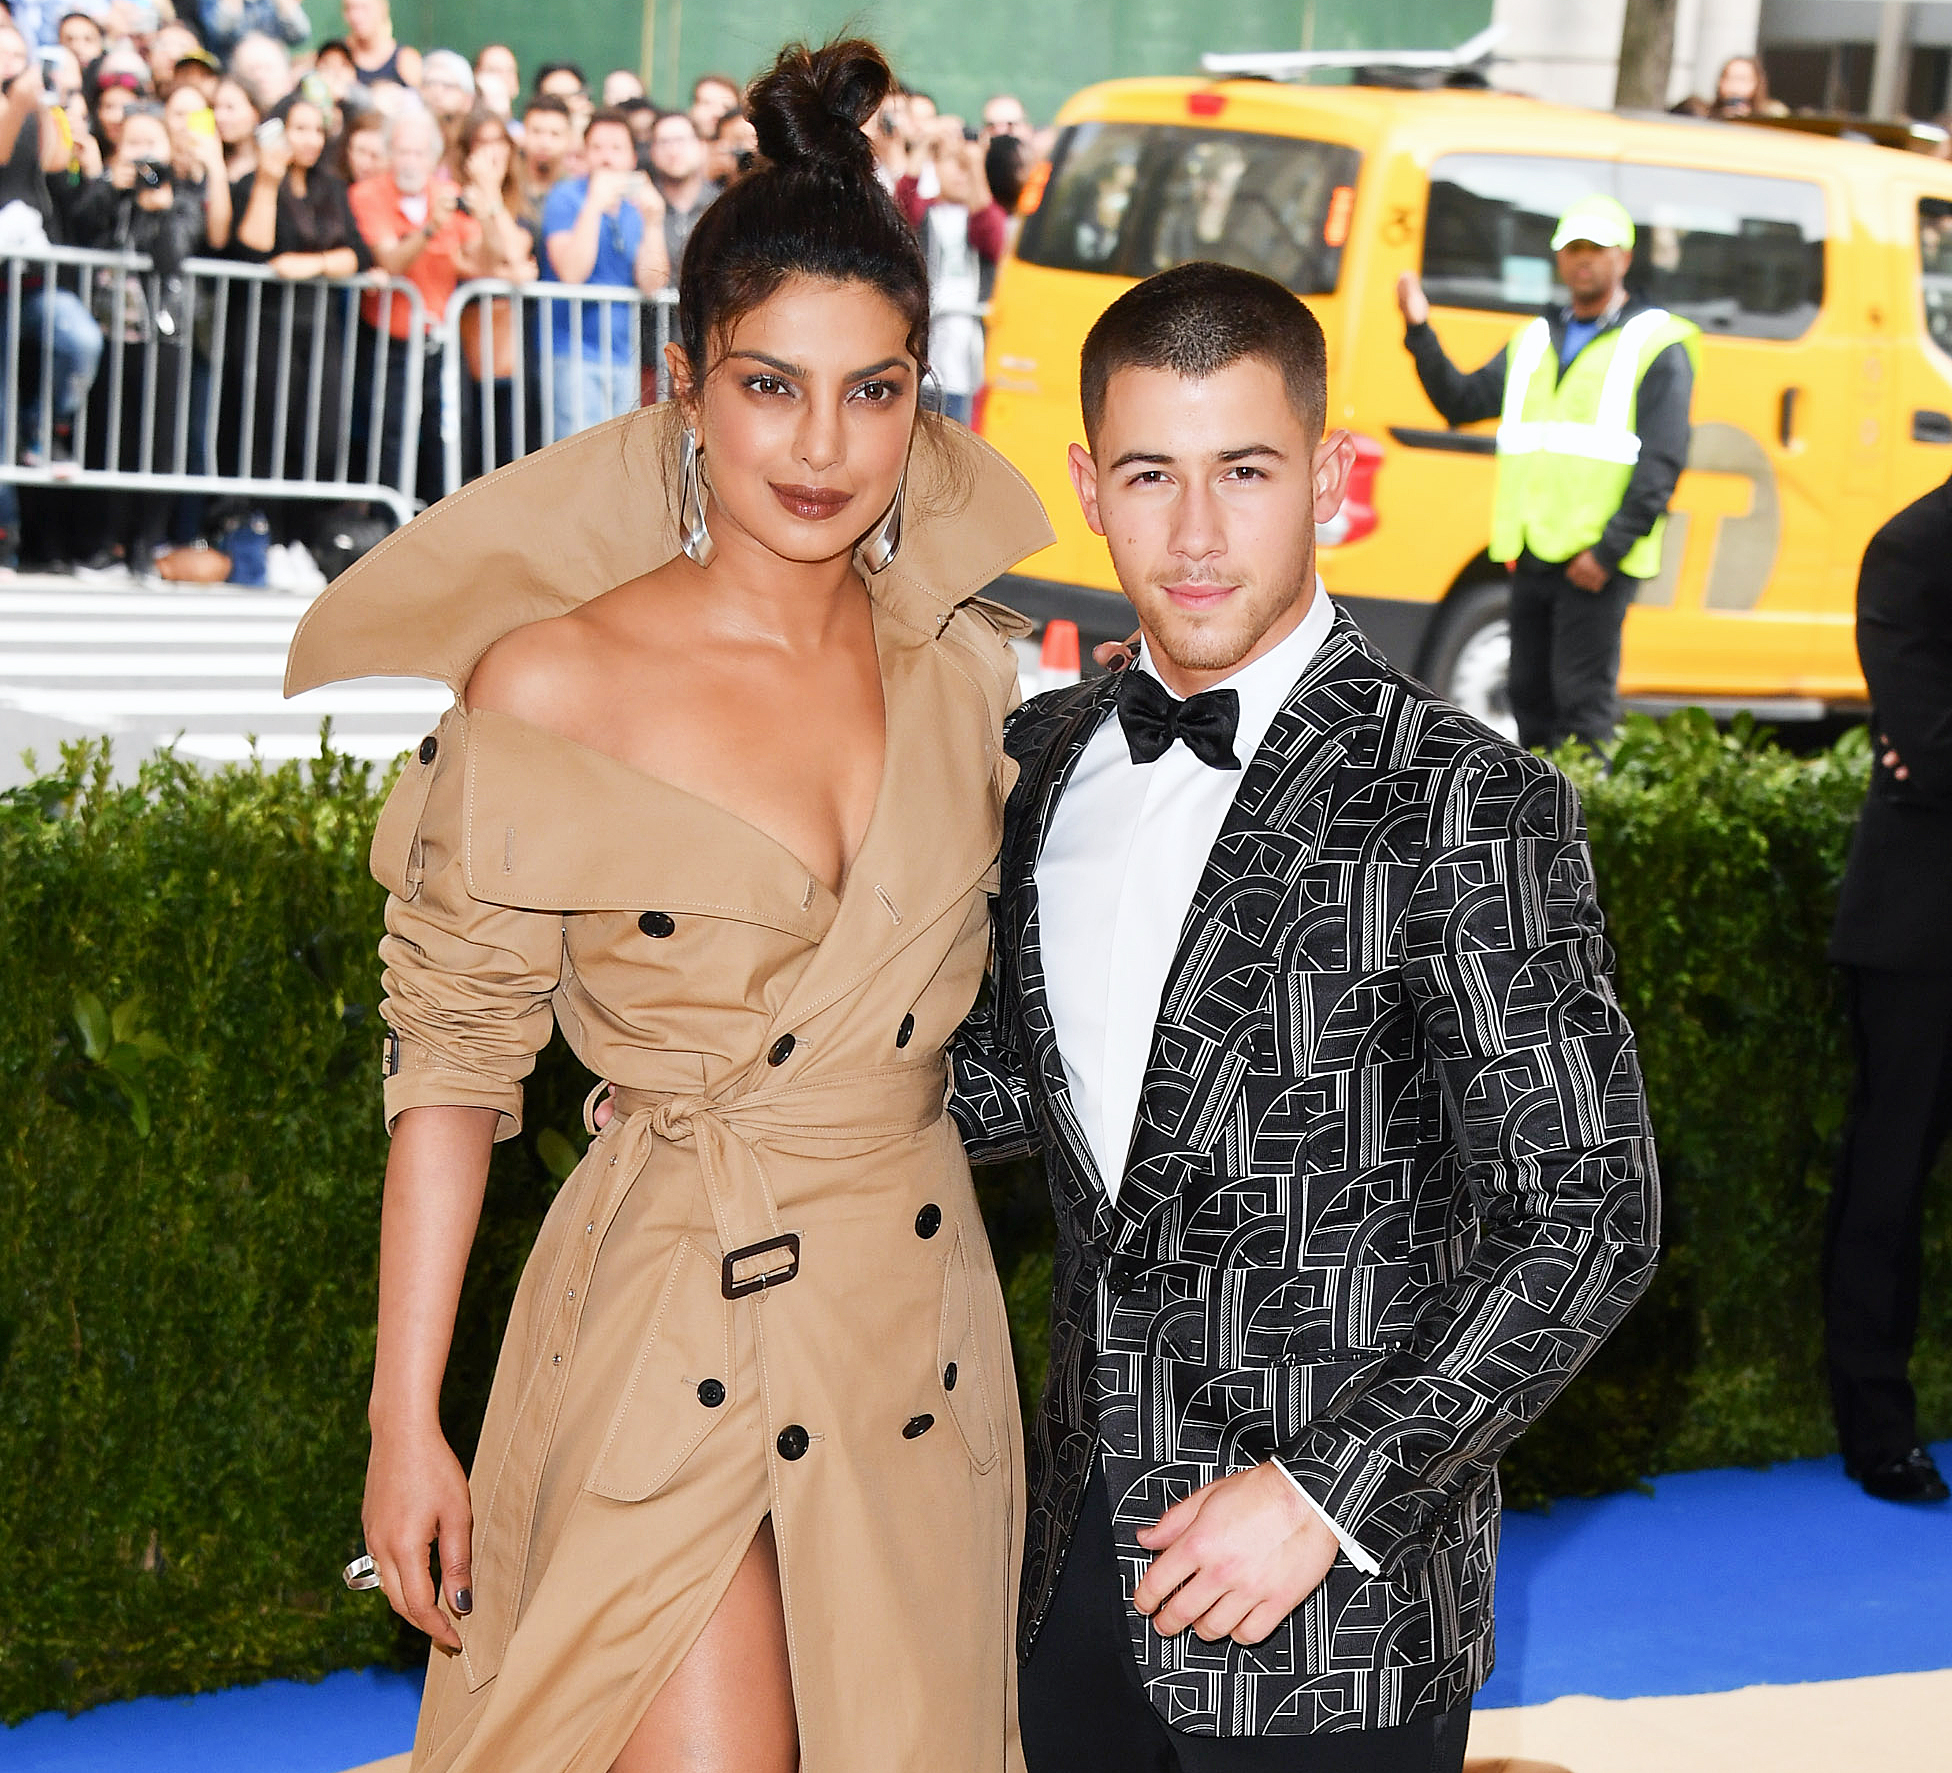 Priyanka Chopra and Nick Jonas spark romance rumours